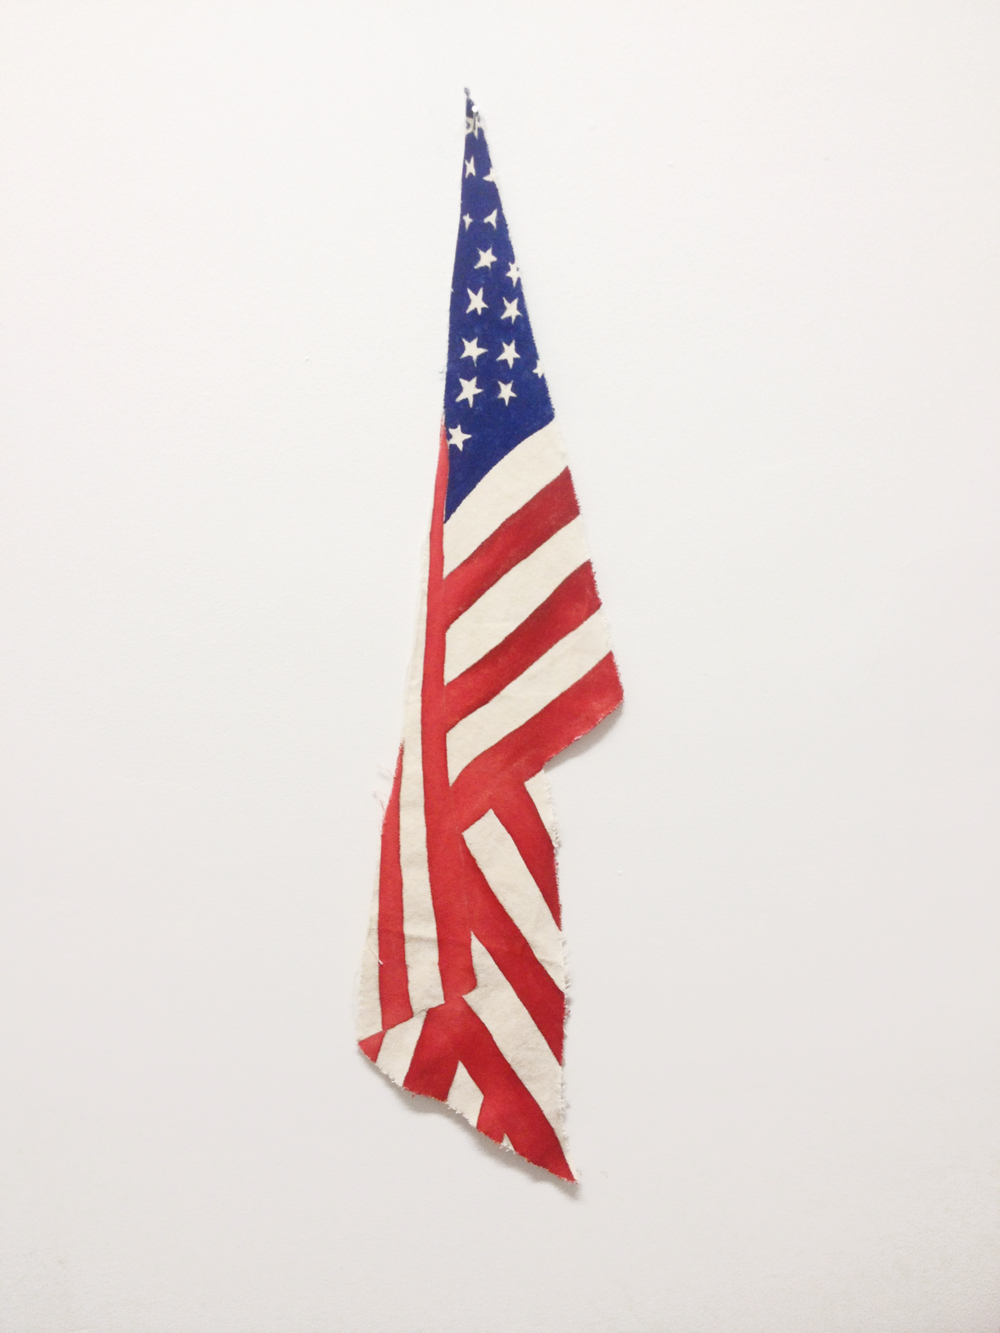 Untitled (Flag), 2012